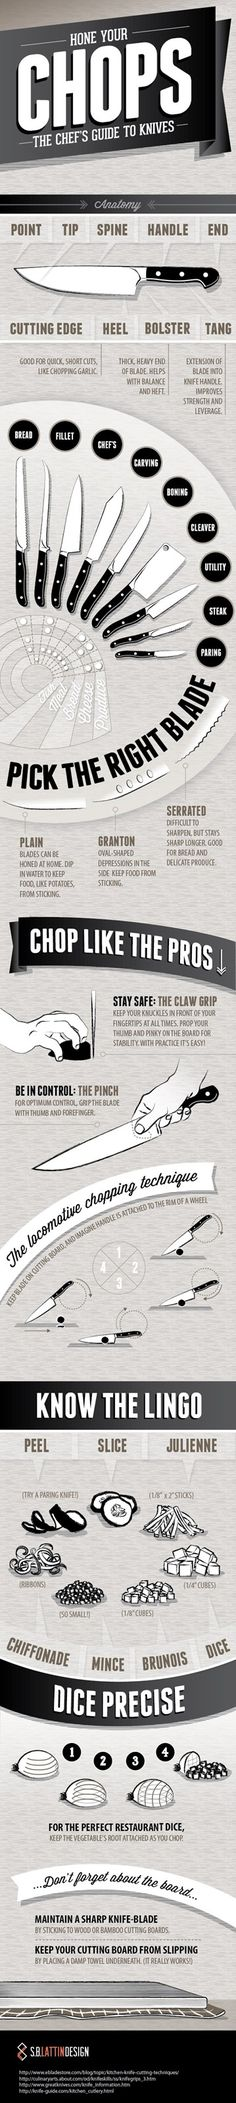 Chop like a boss: The Chef Guide to Knives (I already do that, as my brother is a chef, but liked the infographic)